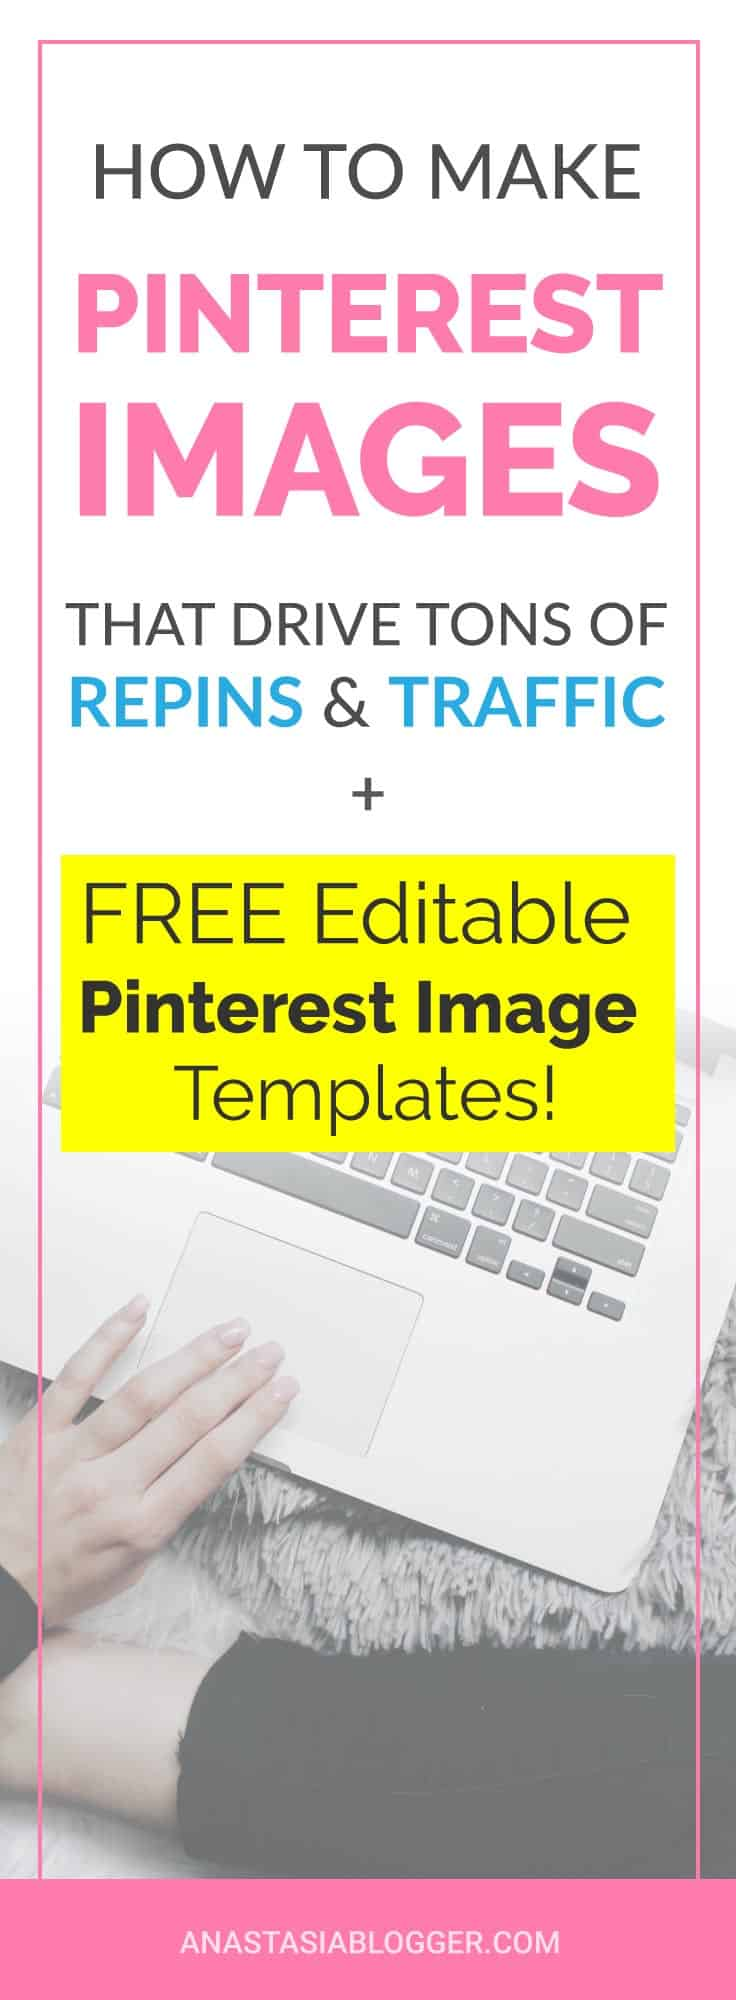 How to make Pinterest Images that Drive Tons of Repins and Traffic in 2018. FREE Pinterest Image Templates! Ideal Pinterest Images Size, Pinterest Image Tips.